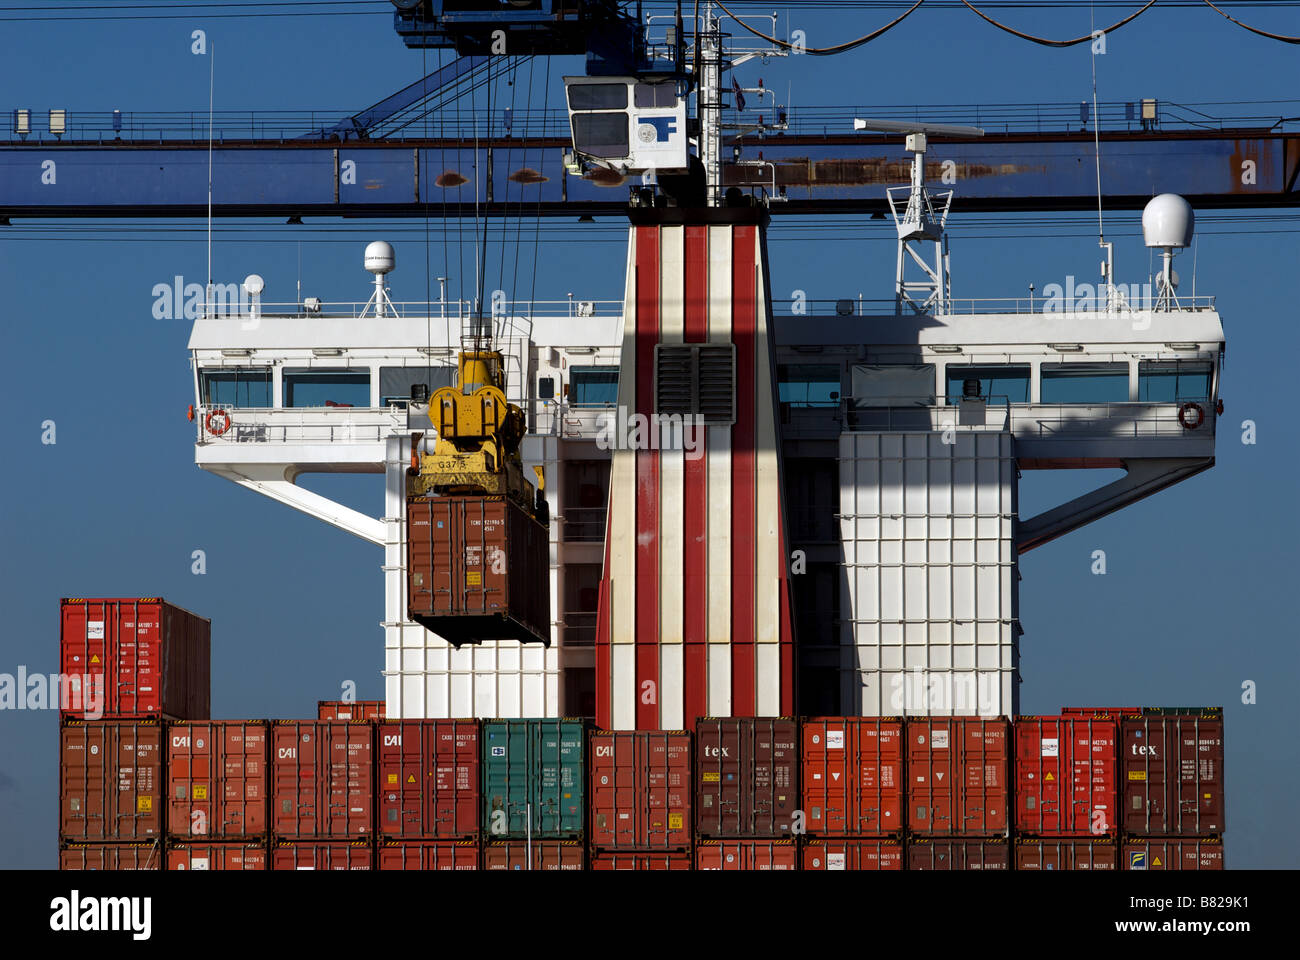 Container ship, port of Felixstowe, Suffolk, UK. - Stock Image